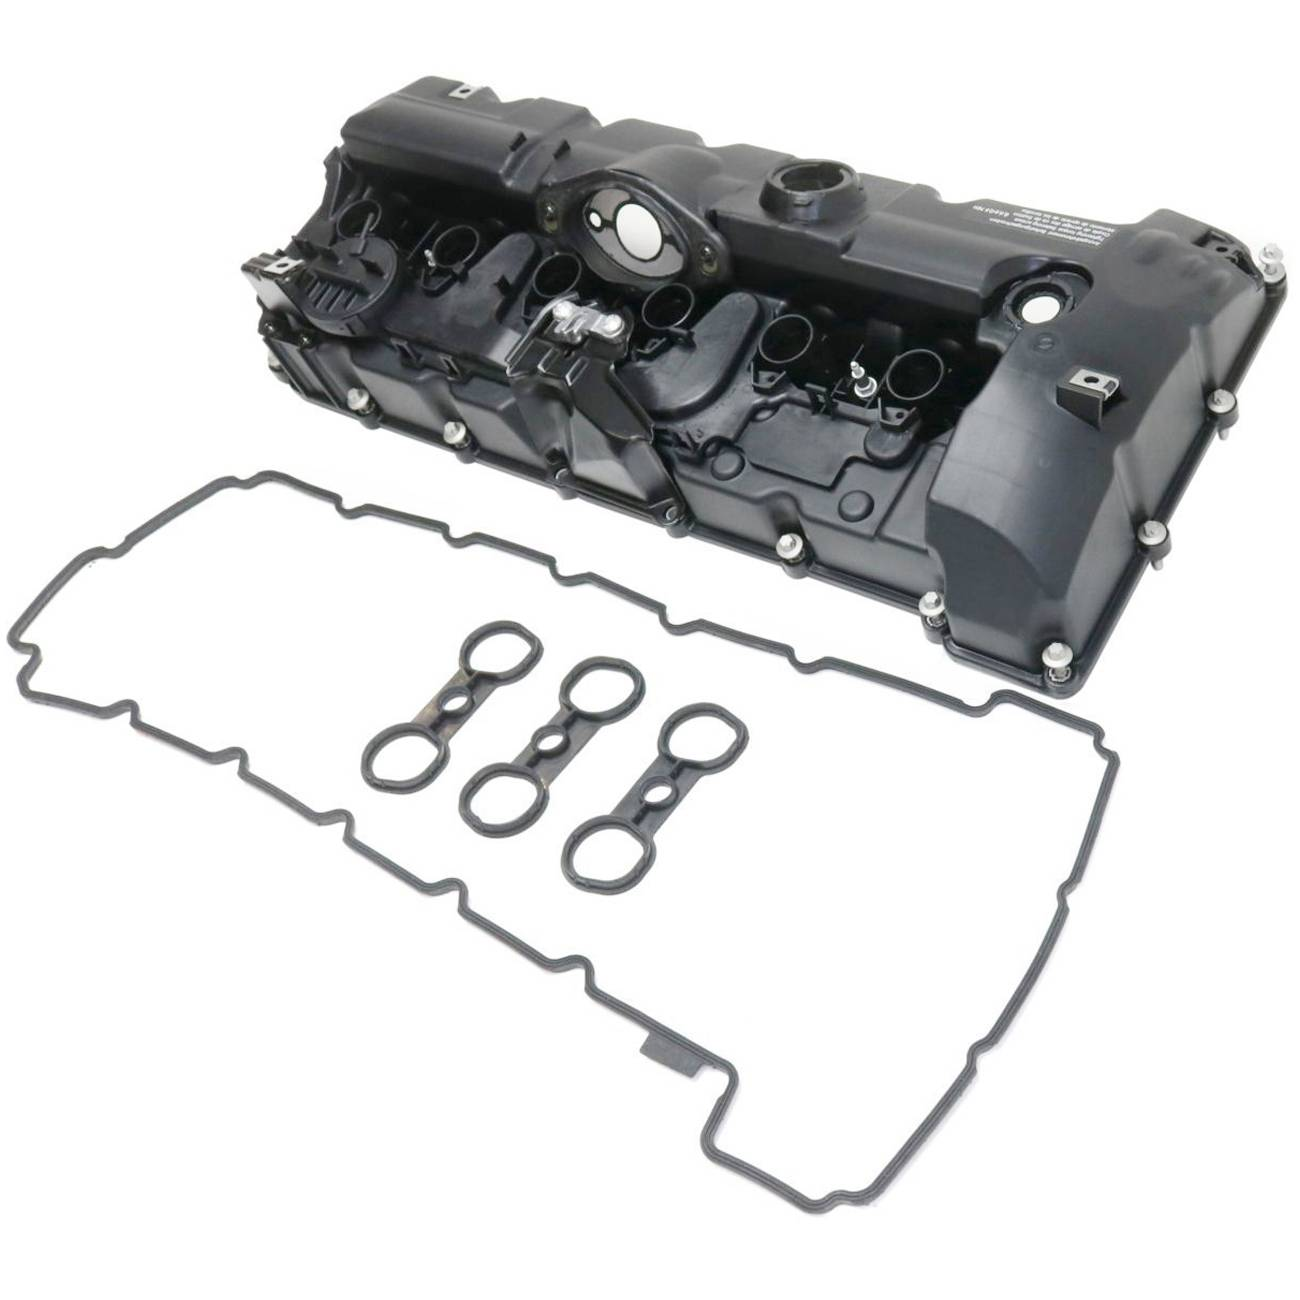 2012 Bmw X5 M Head Gasket: Engine Valve Cover+Gasket Set For BMW X5 E60 E70 E82 E88